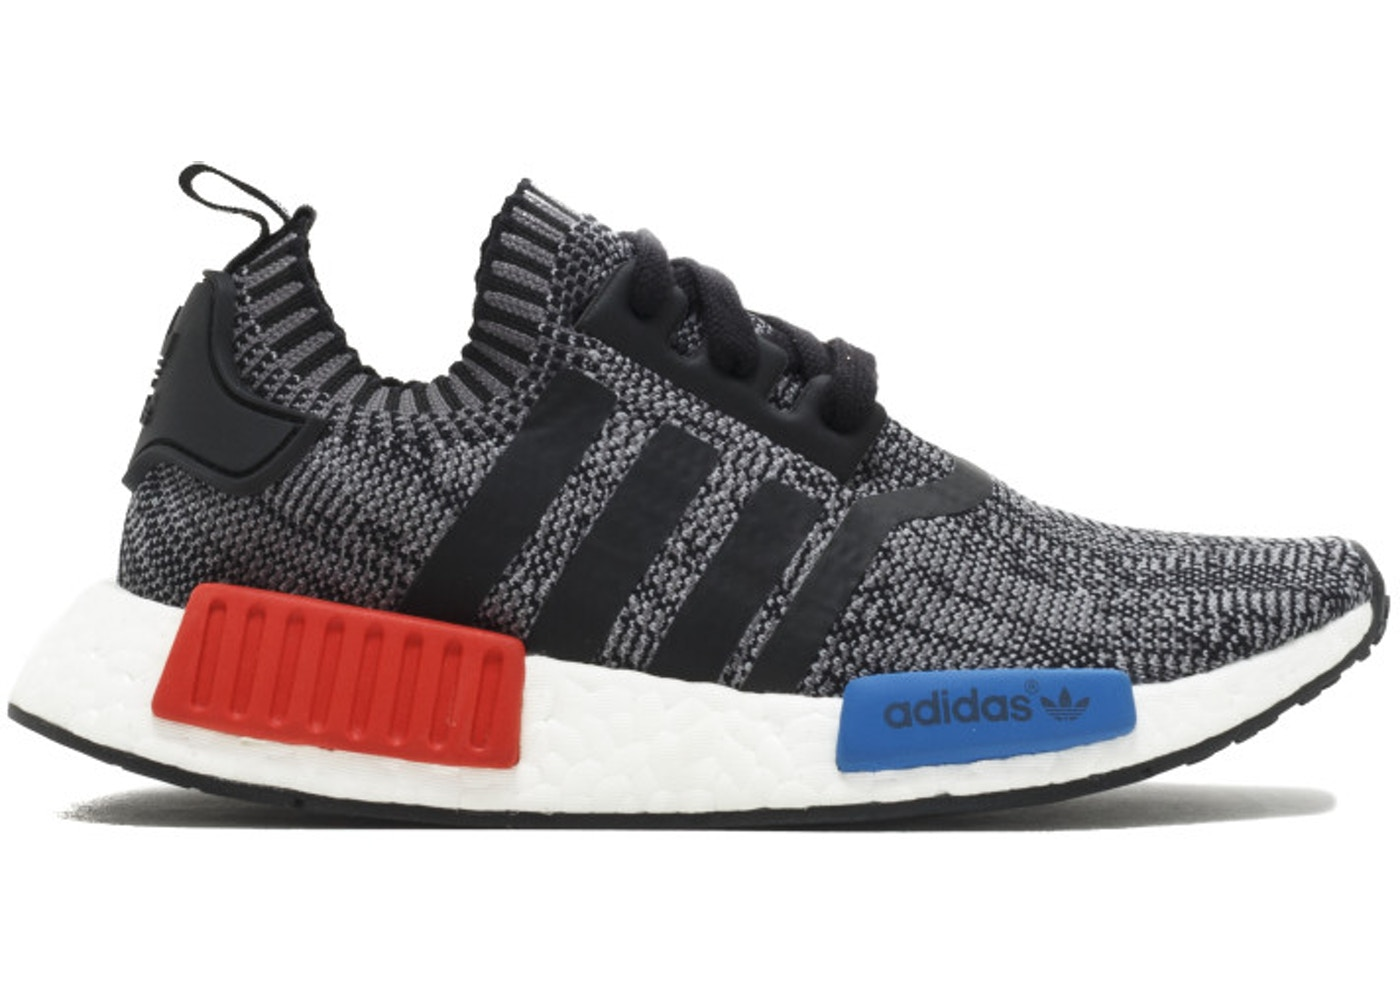 1abfdac94 Buy adidas NMD Shoes   Deadstock Sneakers